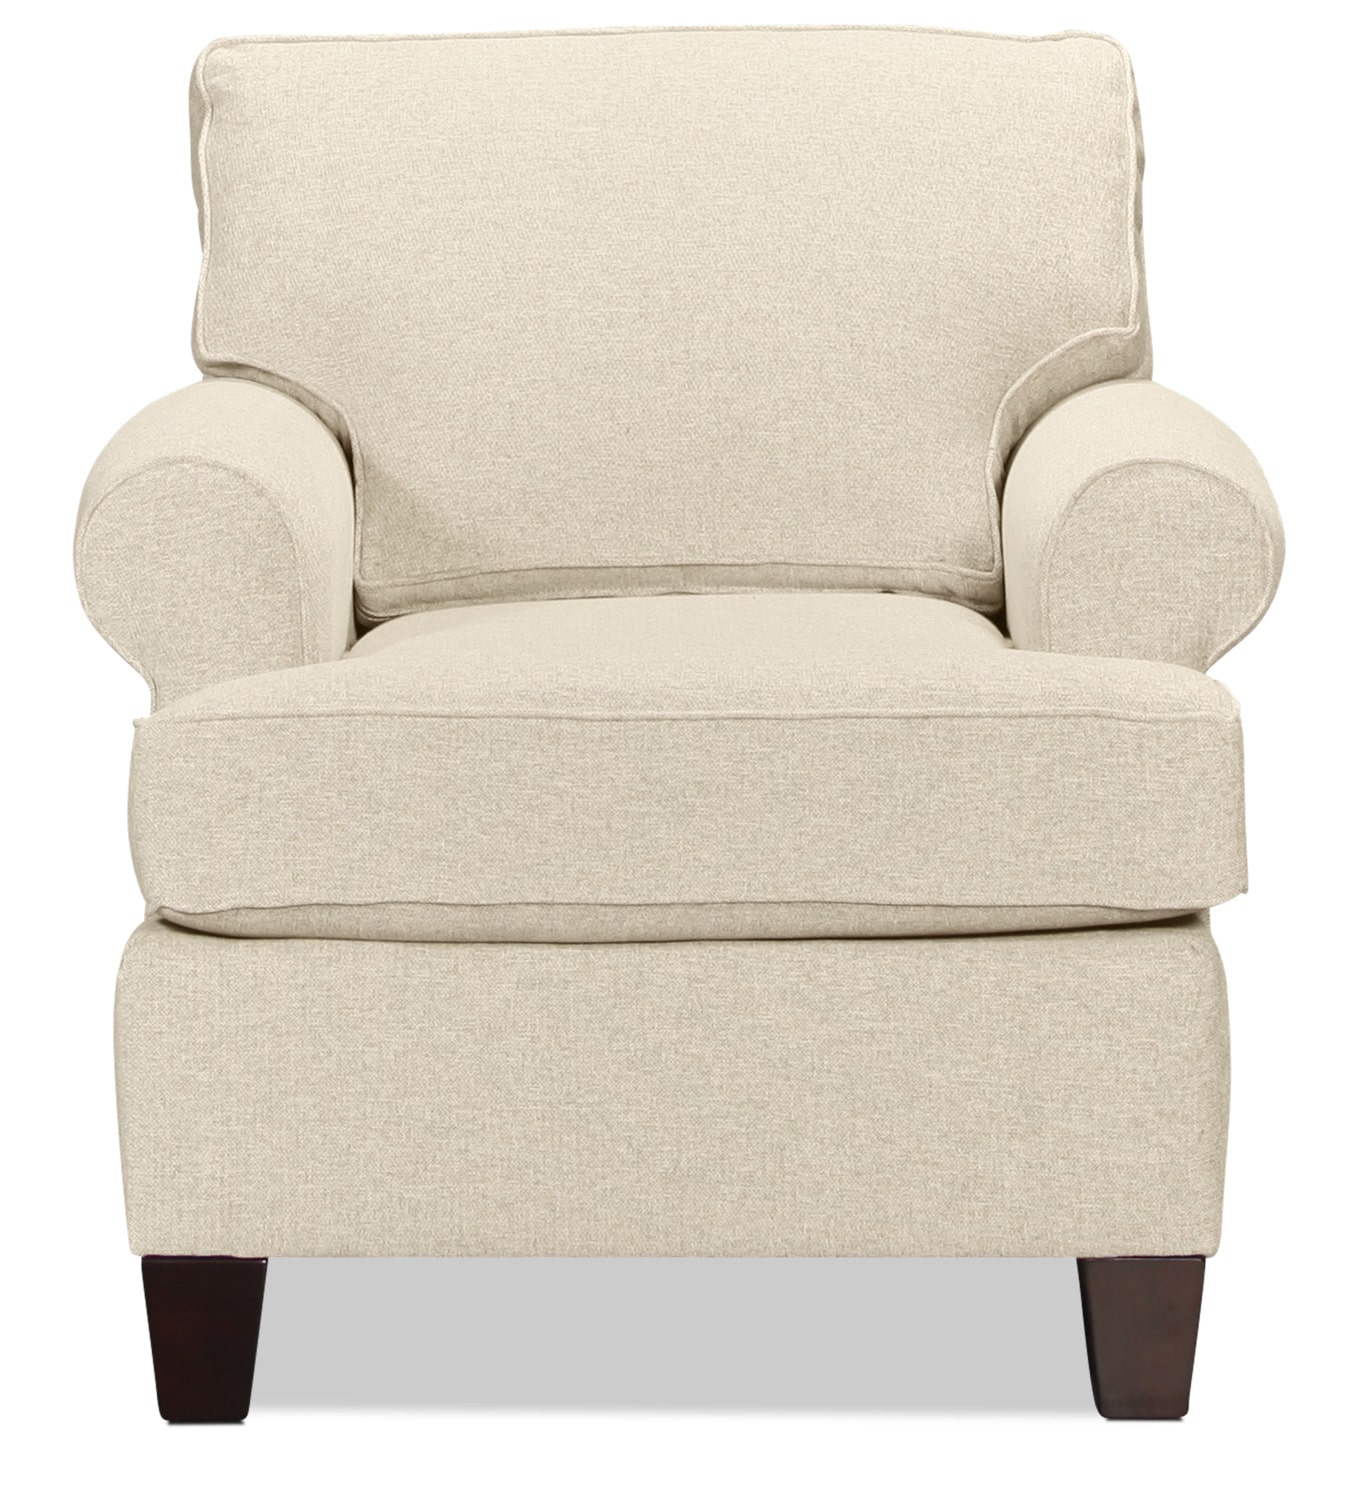 Living Room Furniture - Dover Chair - Birch